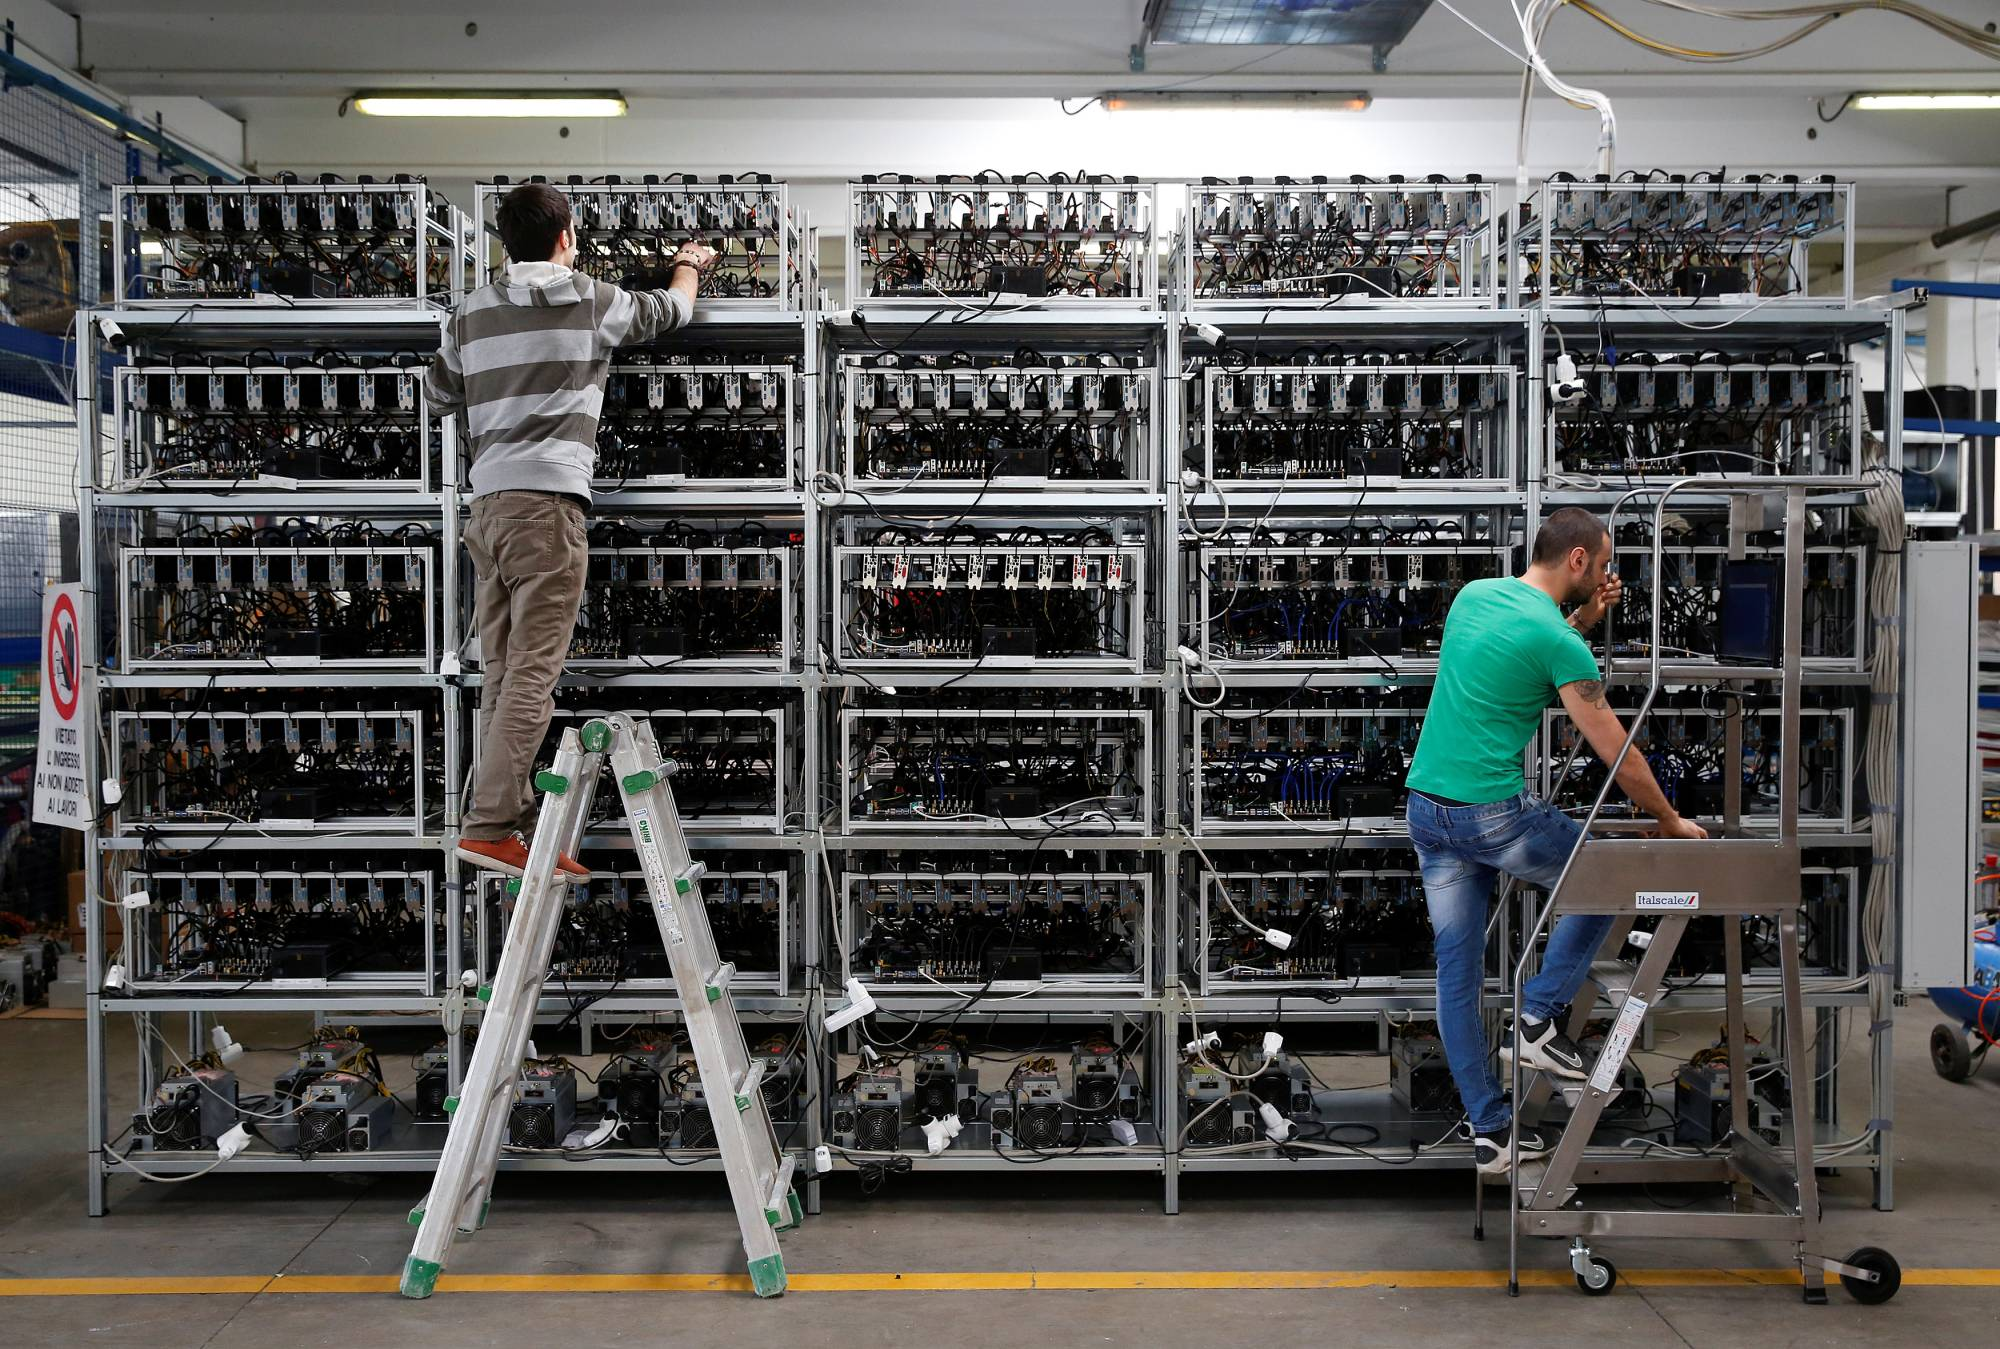 Employees work on bitcoin mining computers at Bitminer Factory in Florence, Italy, in April 2018. | REUTERS